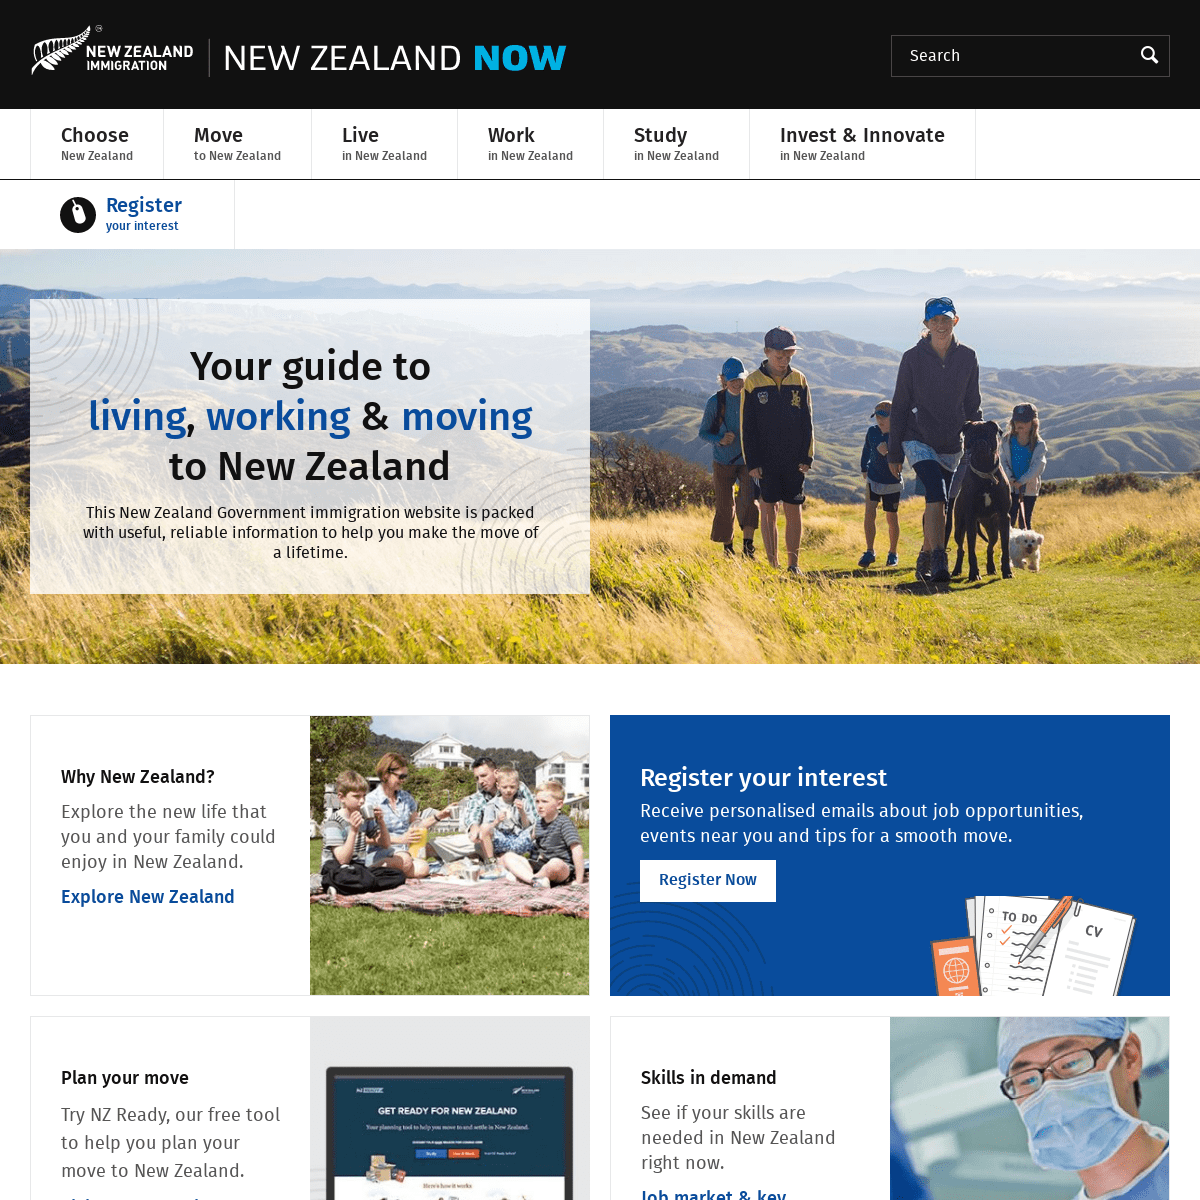 ArchiveBay.com - newzealandnow.govt.nz - Working & Living in New Zealand - New Zealand Now